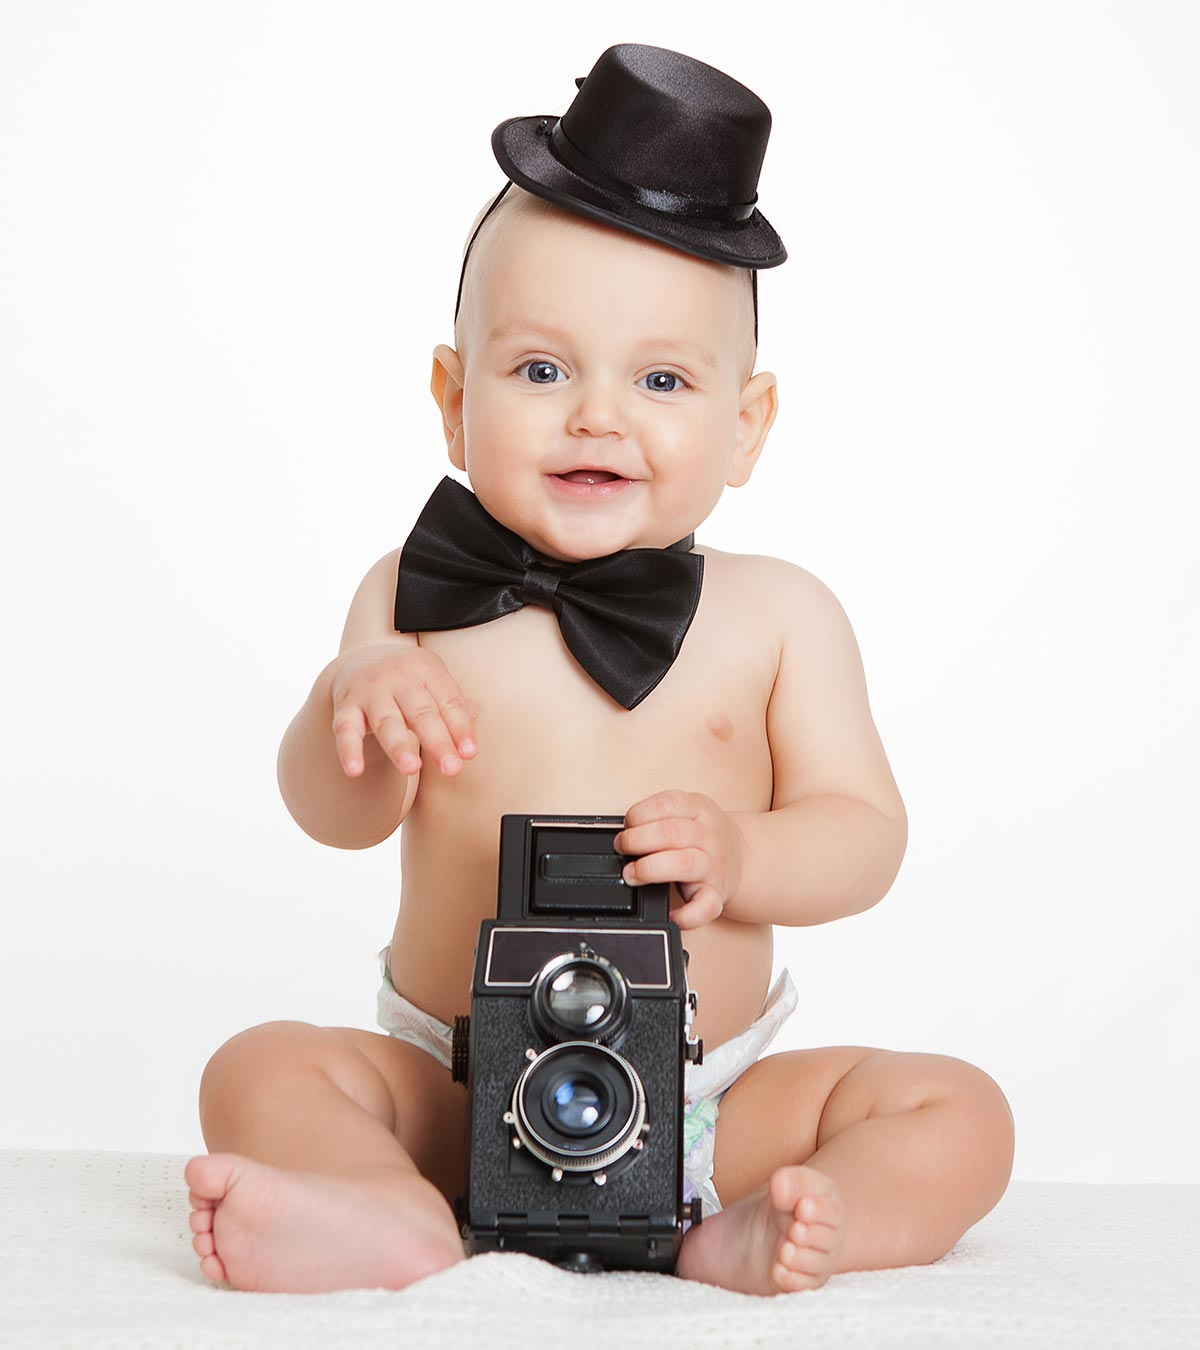 53 Popular Preppy Baby Names For Boys And Girls